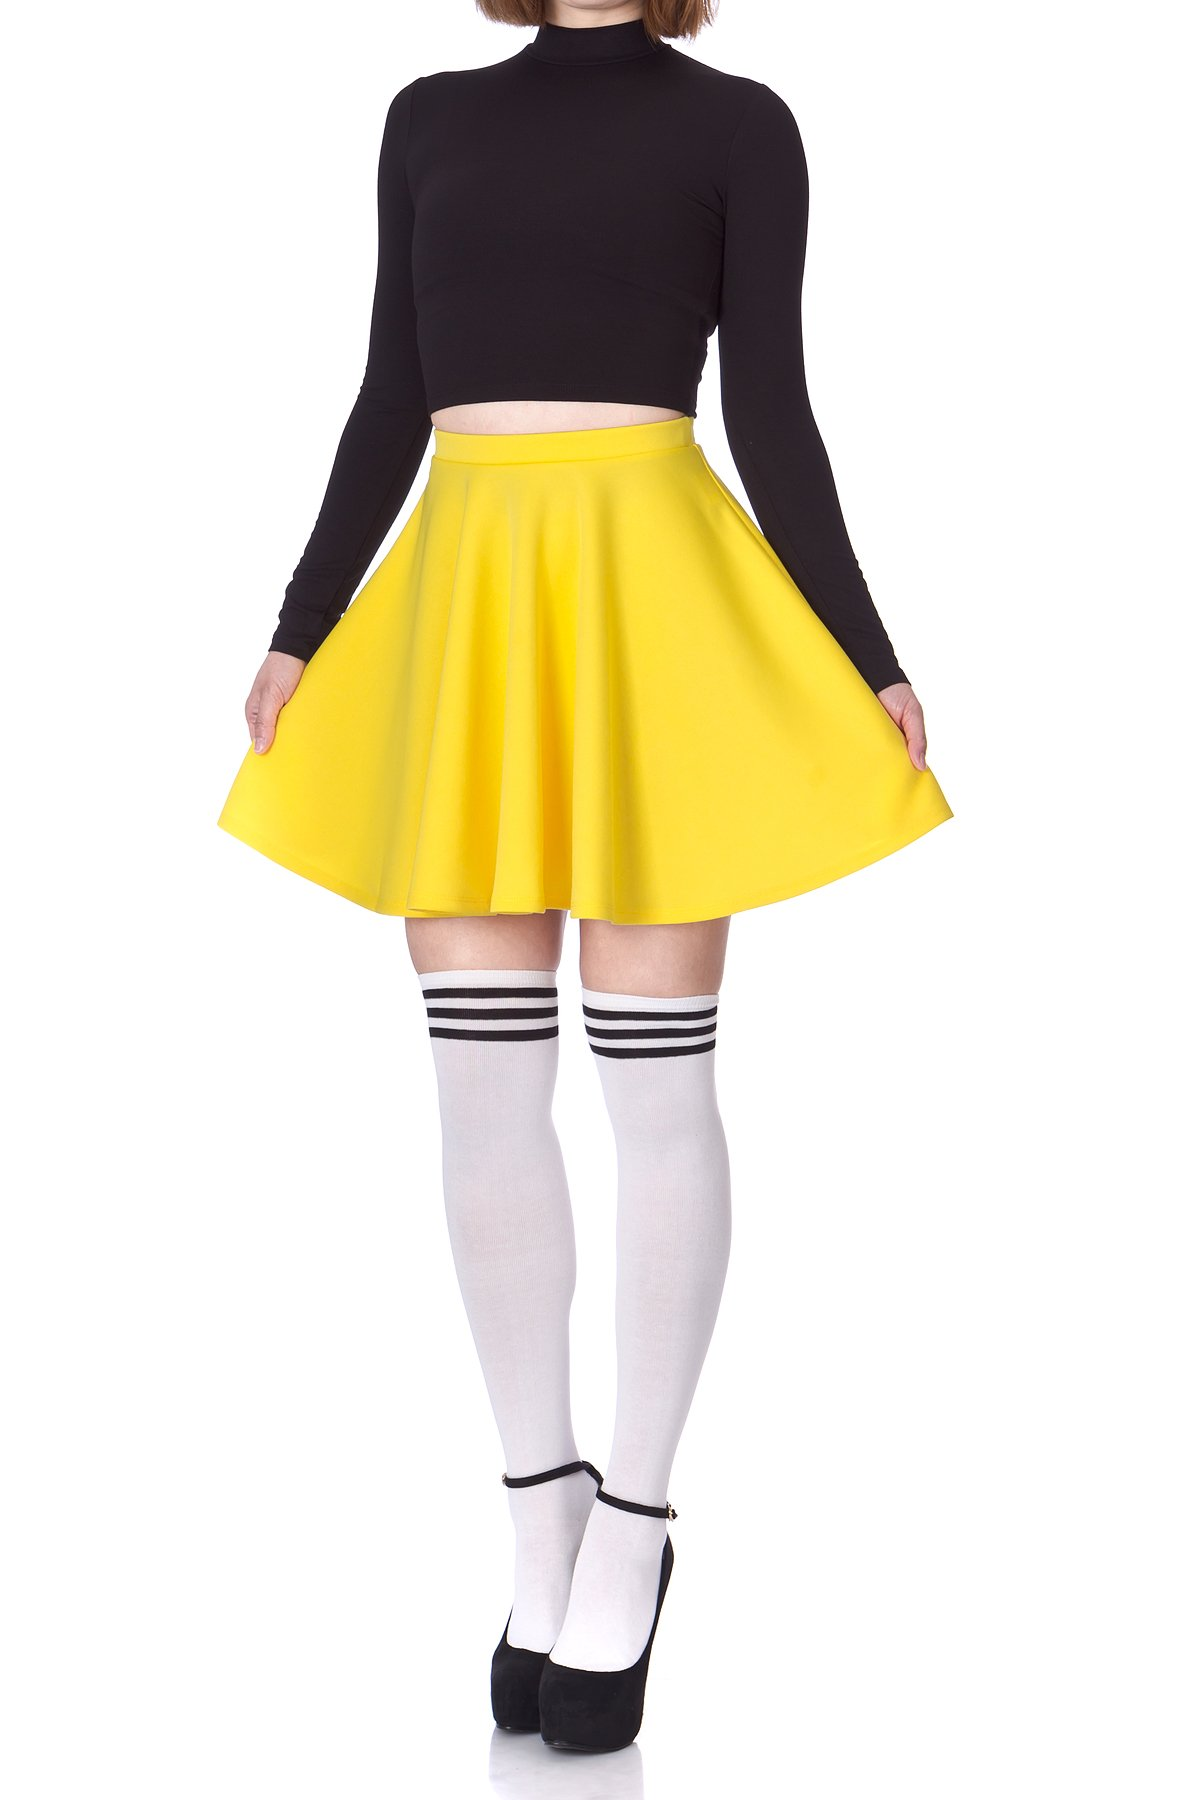 Flouncy High Waist A line Full Flared Circle Swing Dance Party Casual Skater Short Mini Skirt Yellow 03